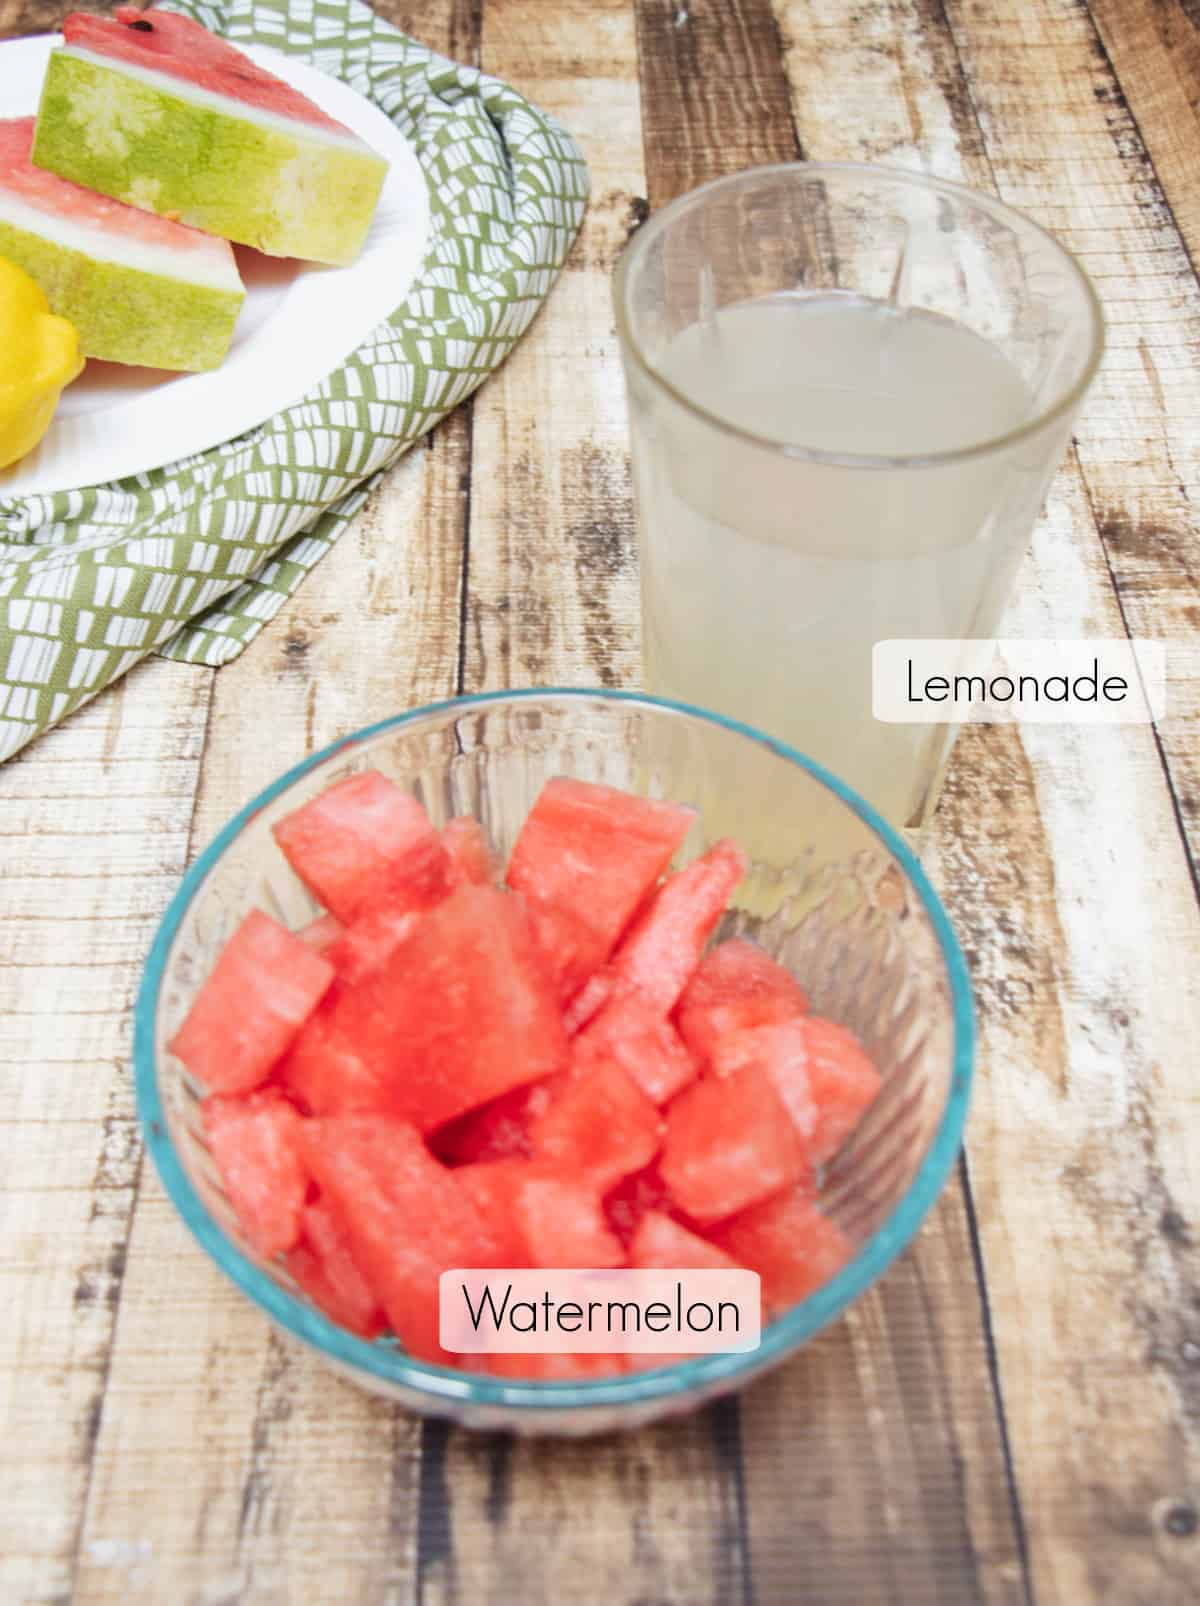 Glass bowl with cubed watermelon and glass of lemonade, both labeled, with plate of watermelon slices and lemon in upper left corner.